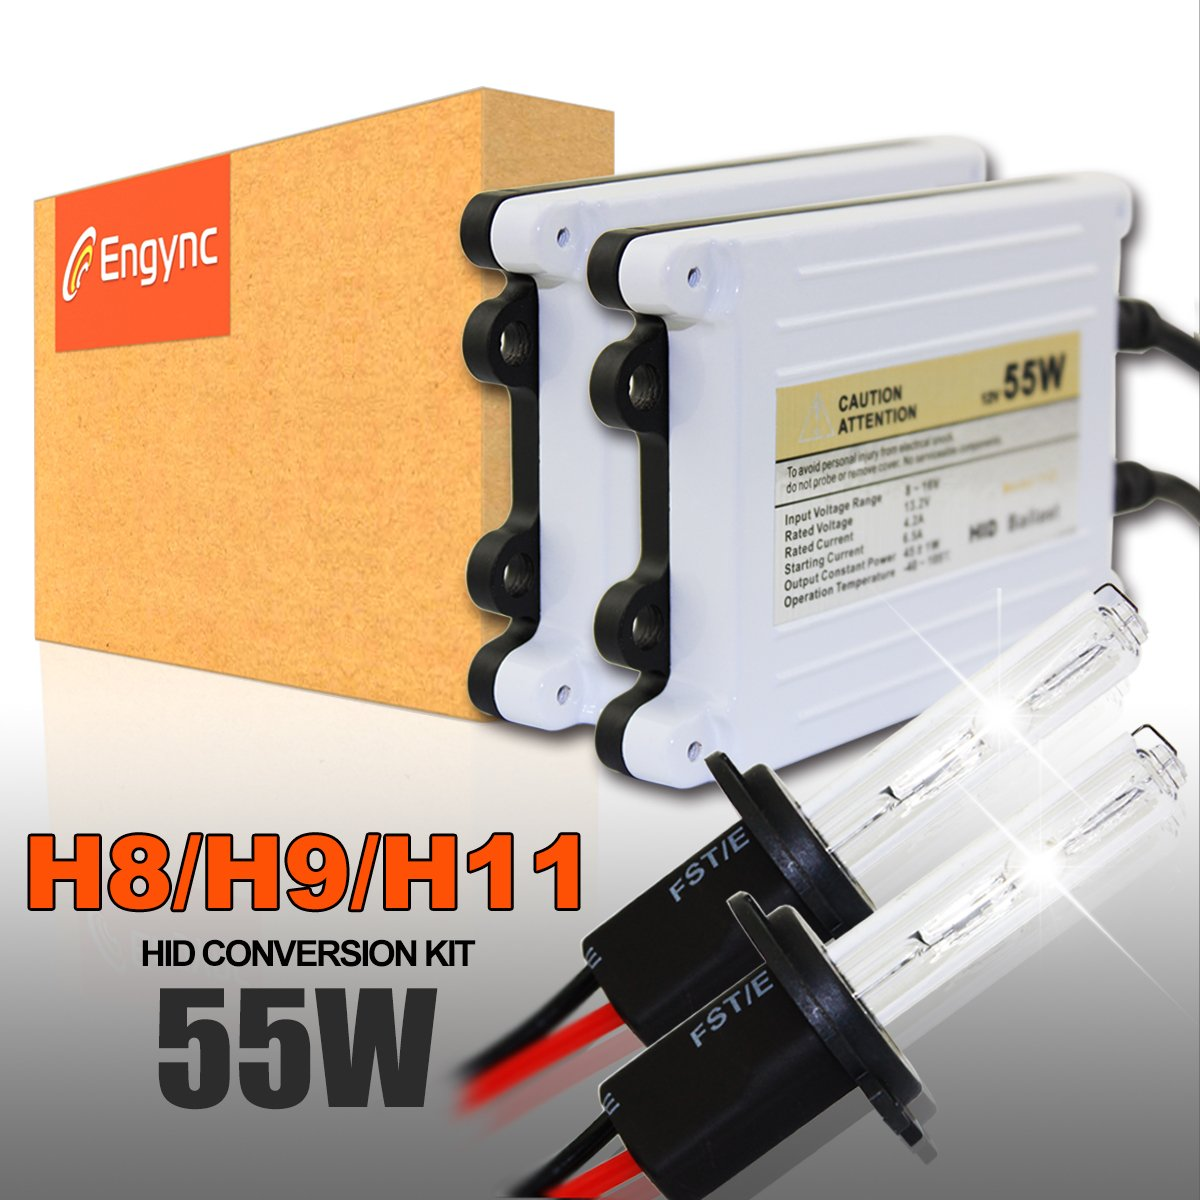 Engync 55w Ac H11 H16 Xenon Hid Conversion Kit With Premium Wiring Diagram For Ballasts And 3 Year Warranty Hi Low White Light A Blue Tinge Color 8000k Lights